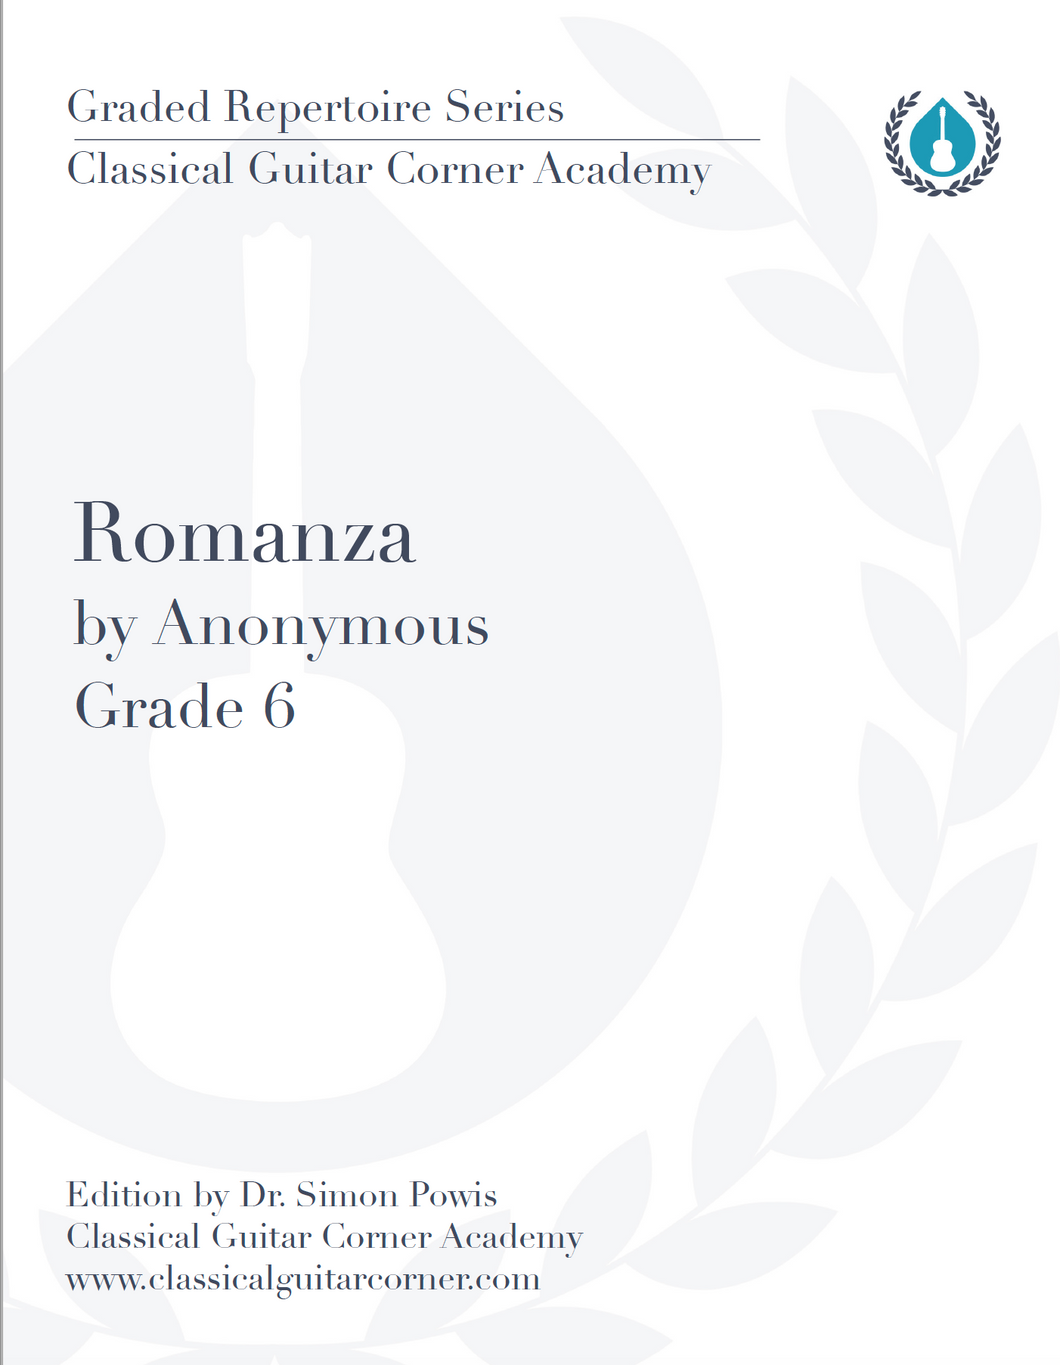 Romanza by Anonymous